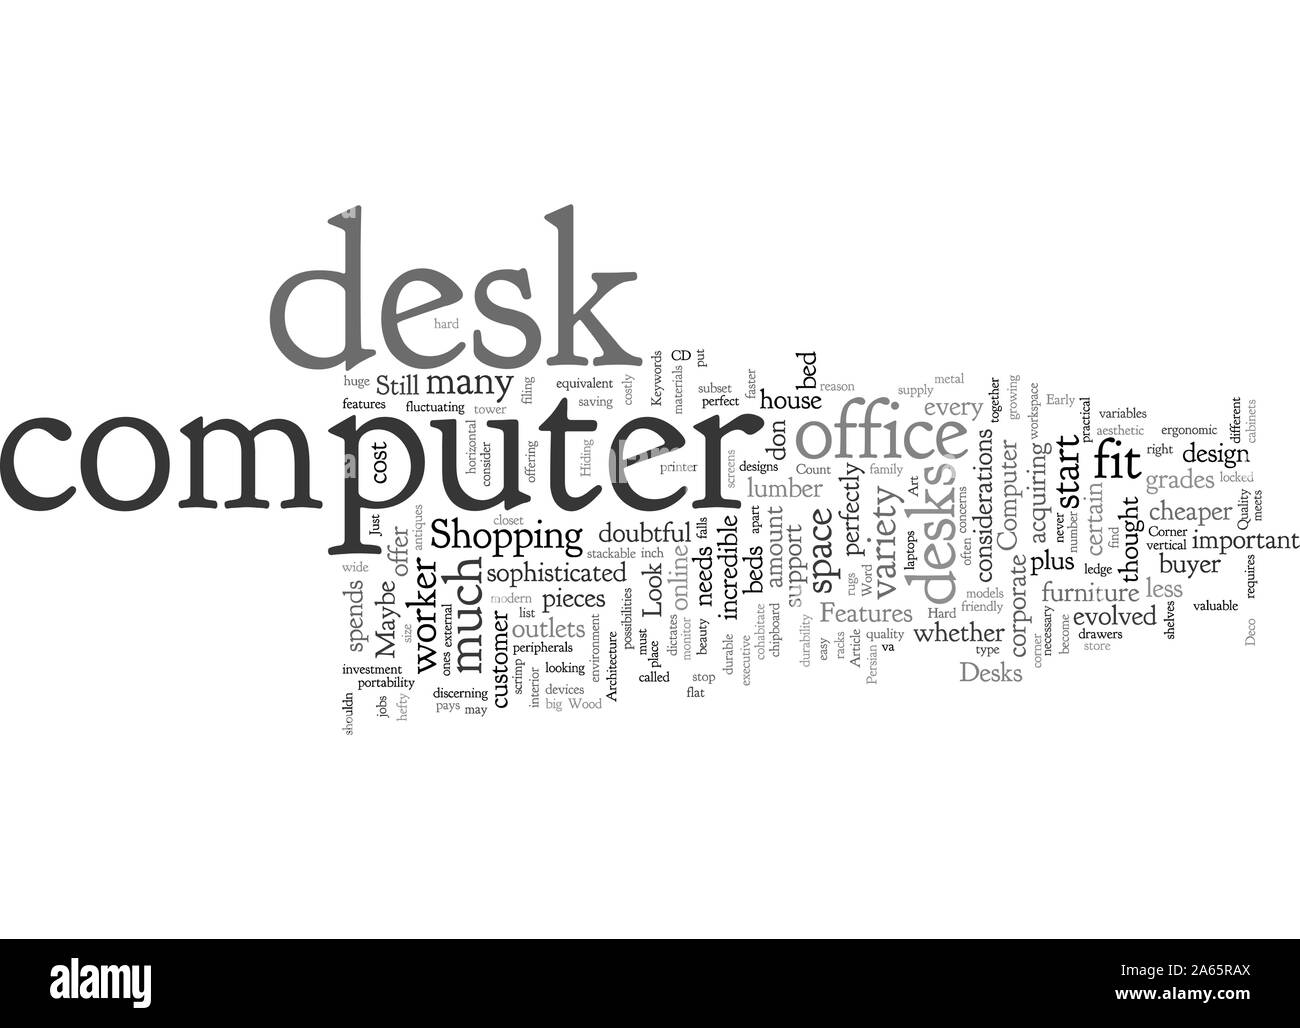 Computer Desks Features To Look For Stock Vector